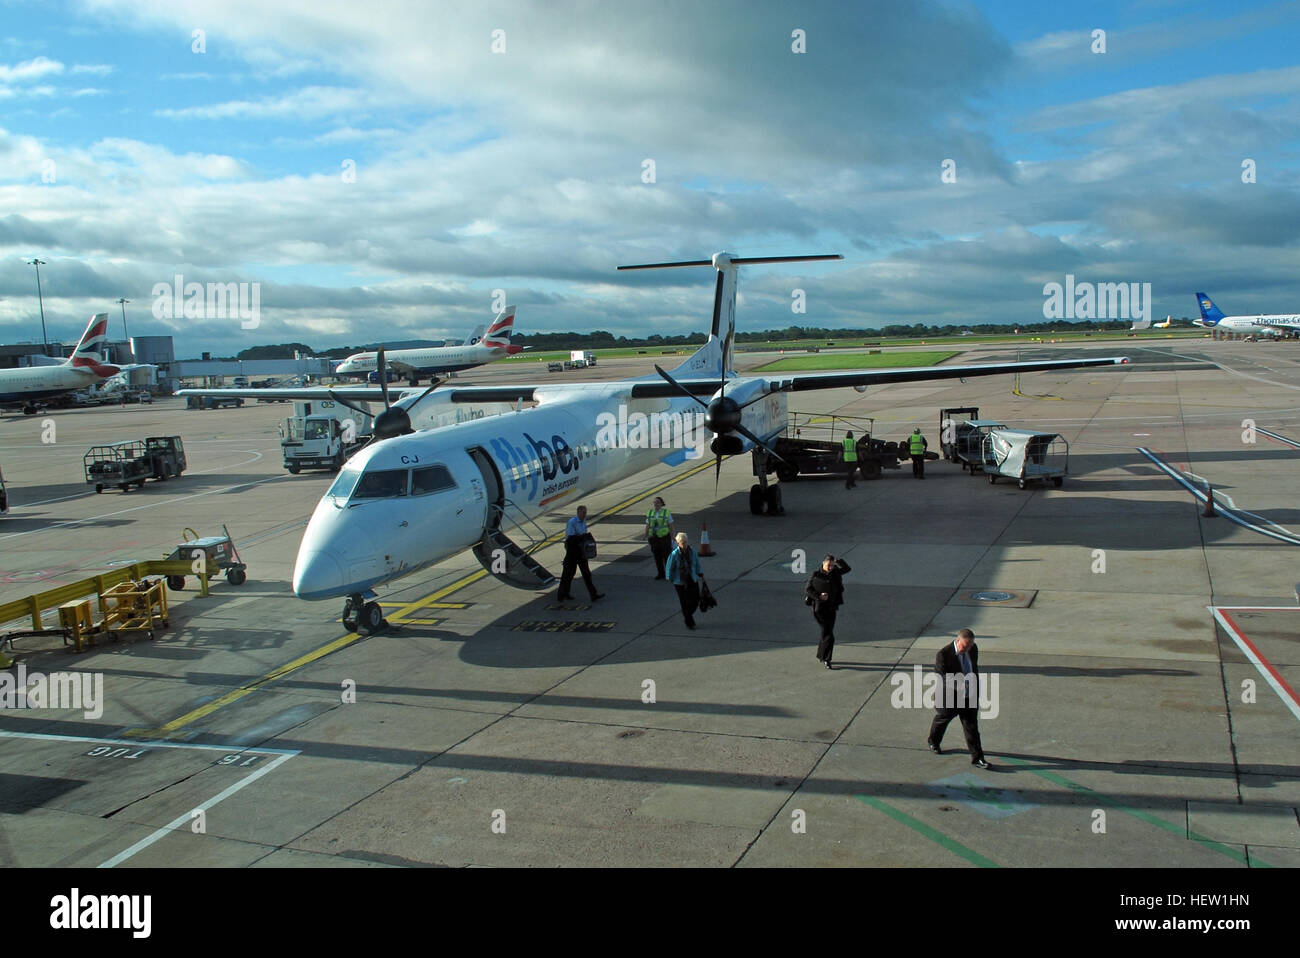 Flybe air plane G-JECJ Bombardier Dash-8 Q400 arriving Manchester Ringway Airport, England, UK - Stock Image